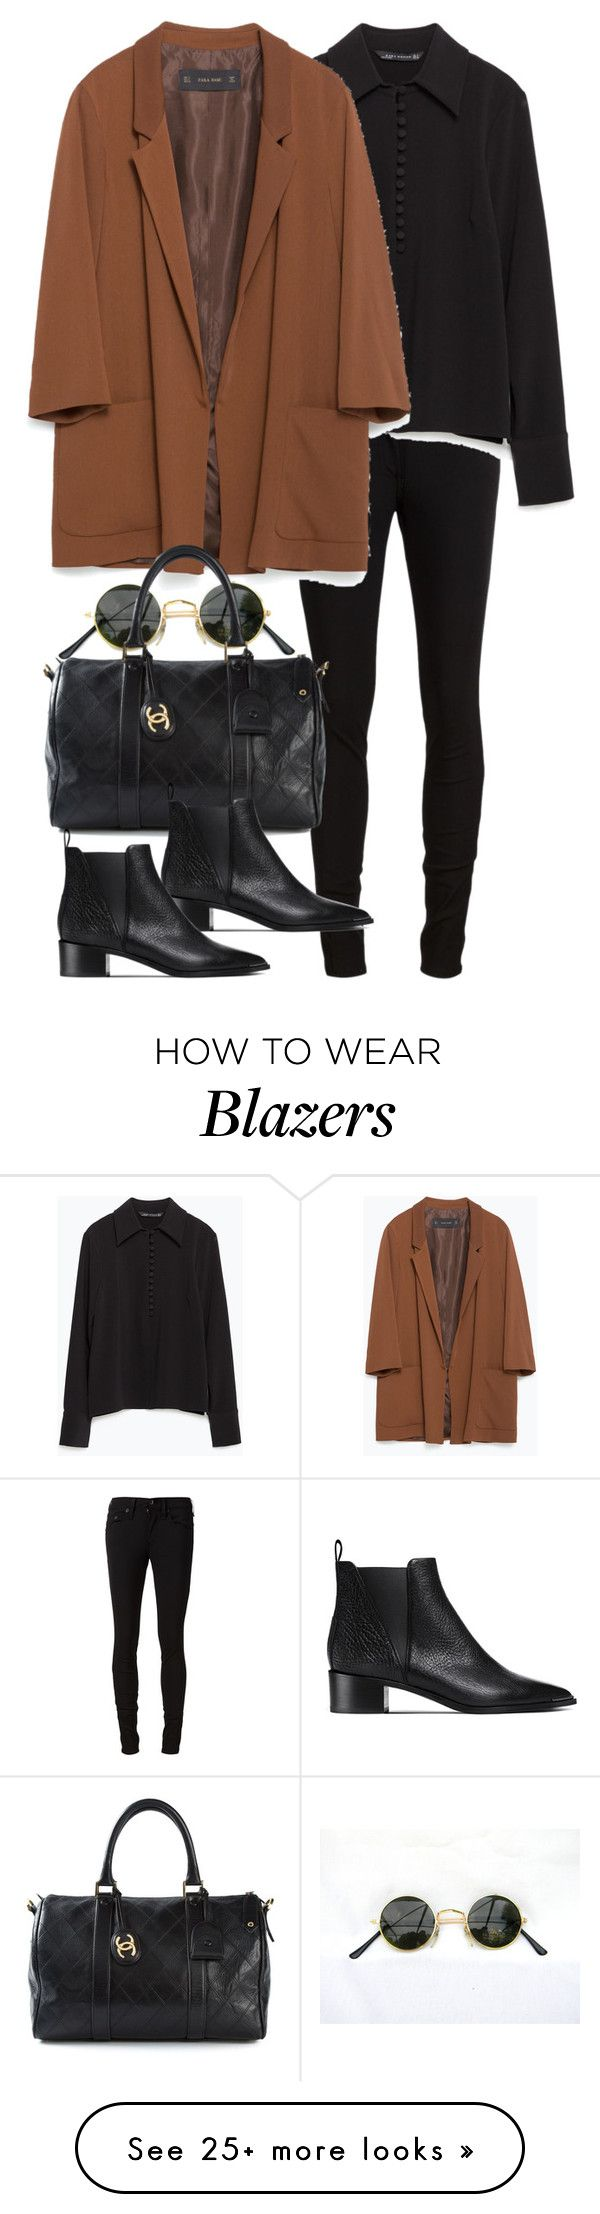 """""""Untitled #7969"""" by nikka-phillips on Polyvore featuring rag & bone/JEAN, Zara, Chanel and Acne Studios"""